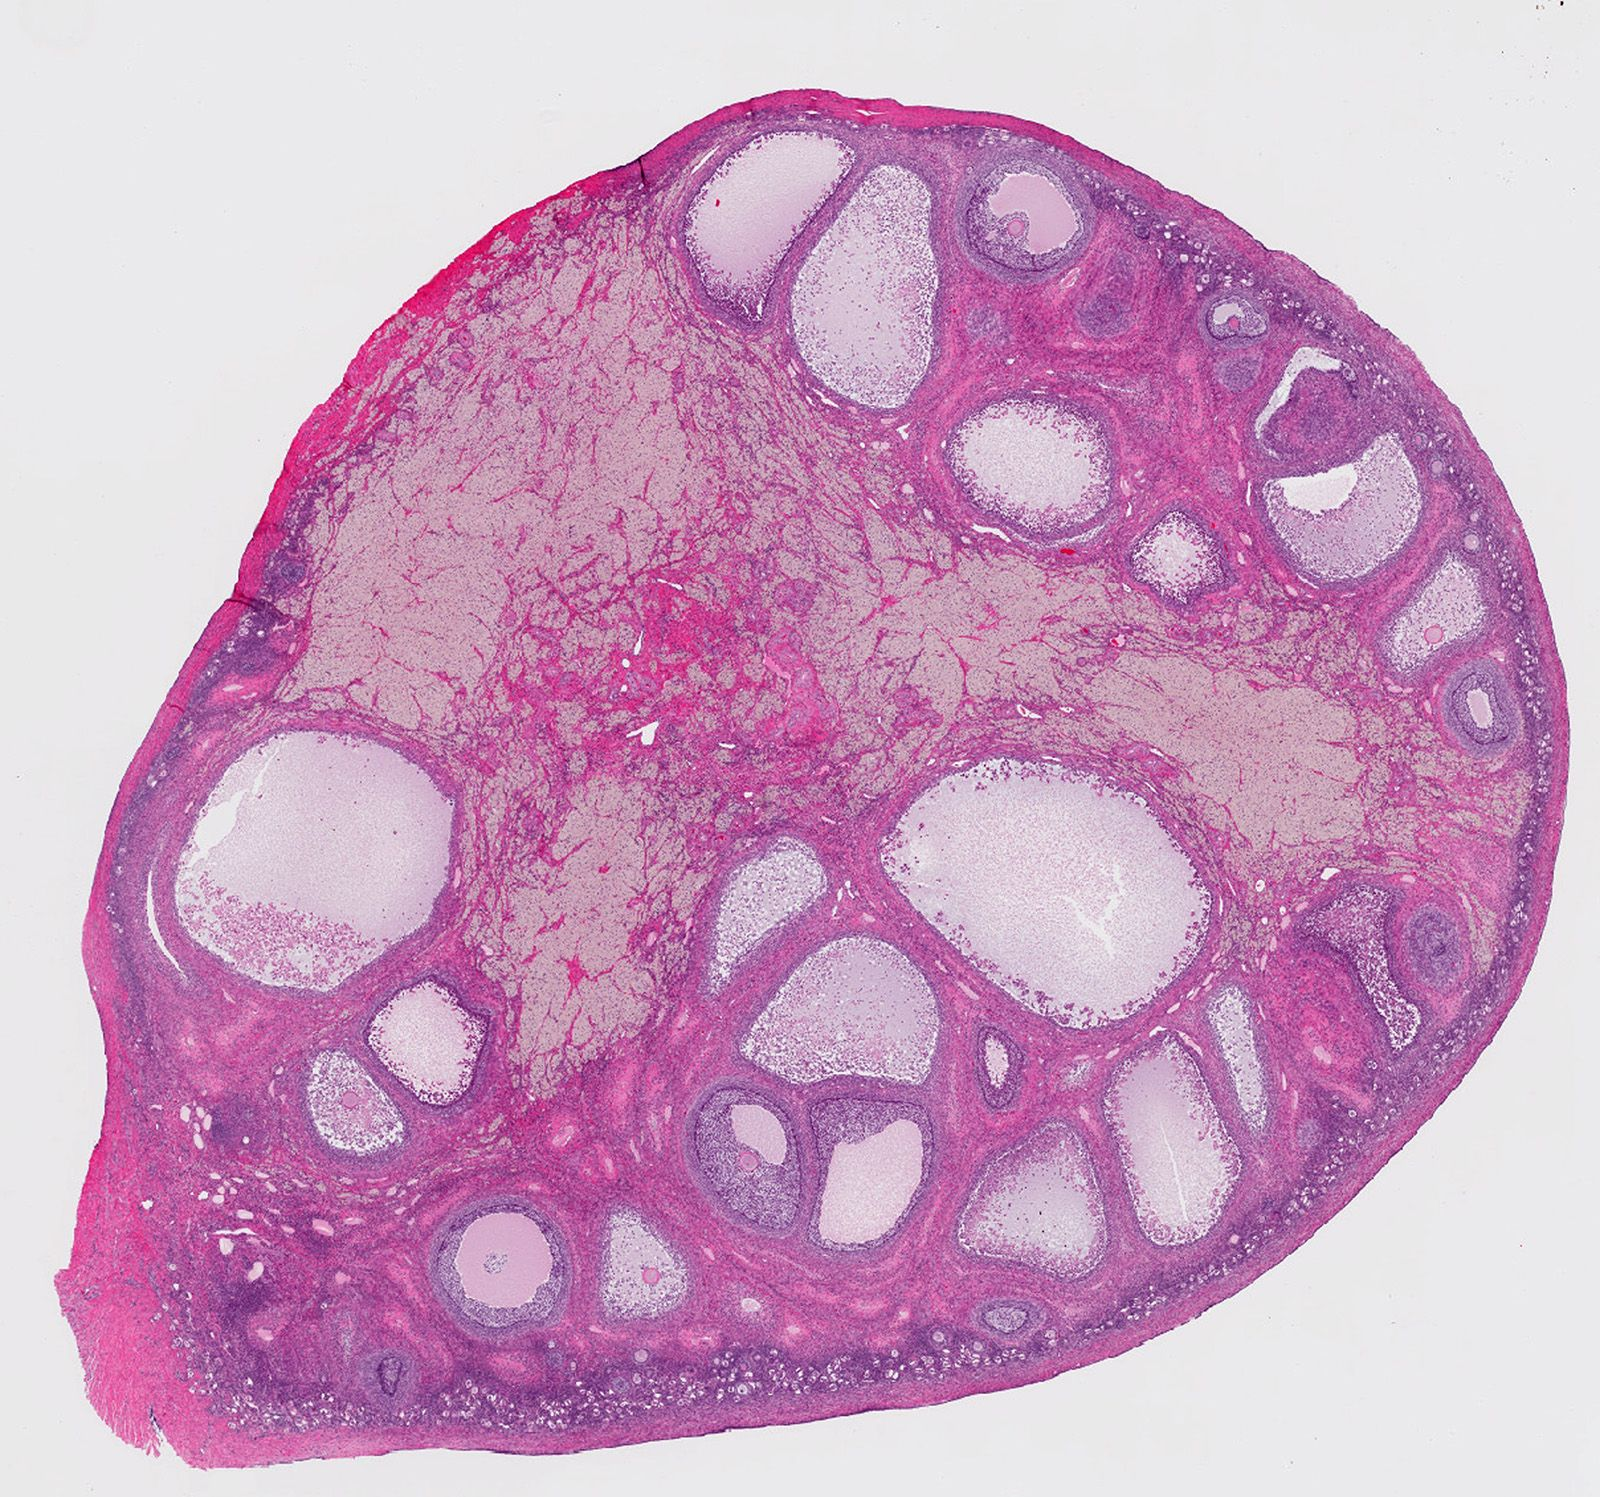 Microscopic image of embryo